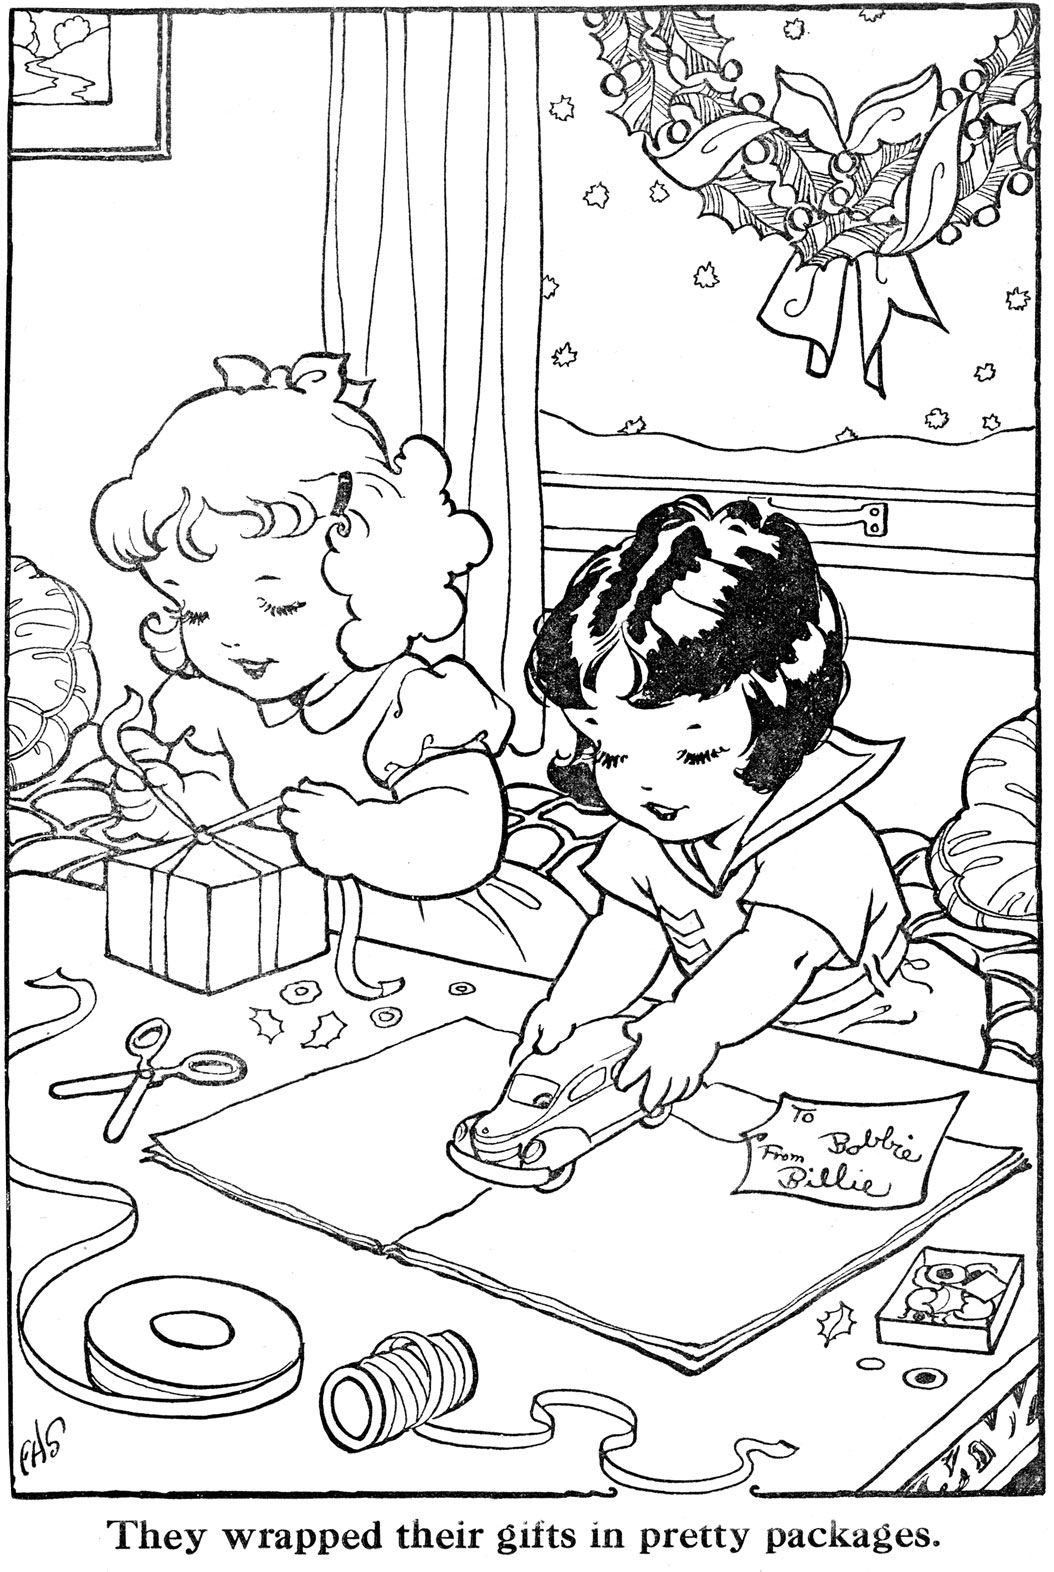 Coloring Page s Gift wrap 1500 free paper dolls toys